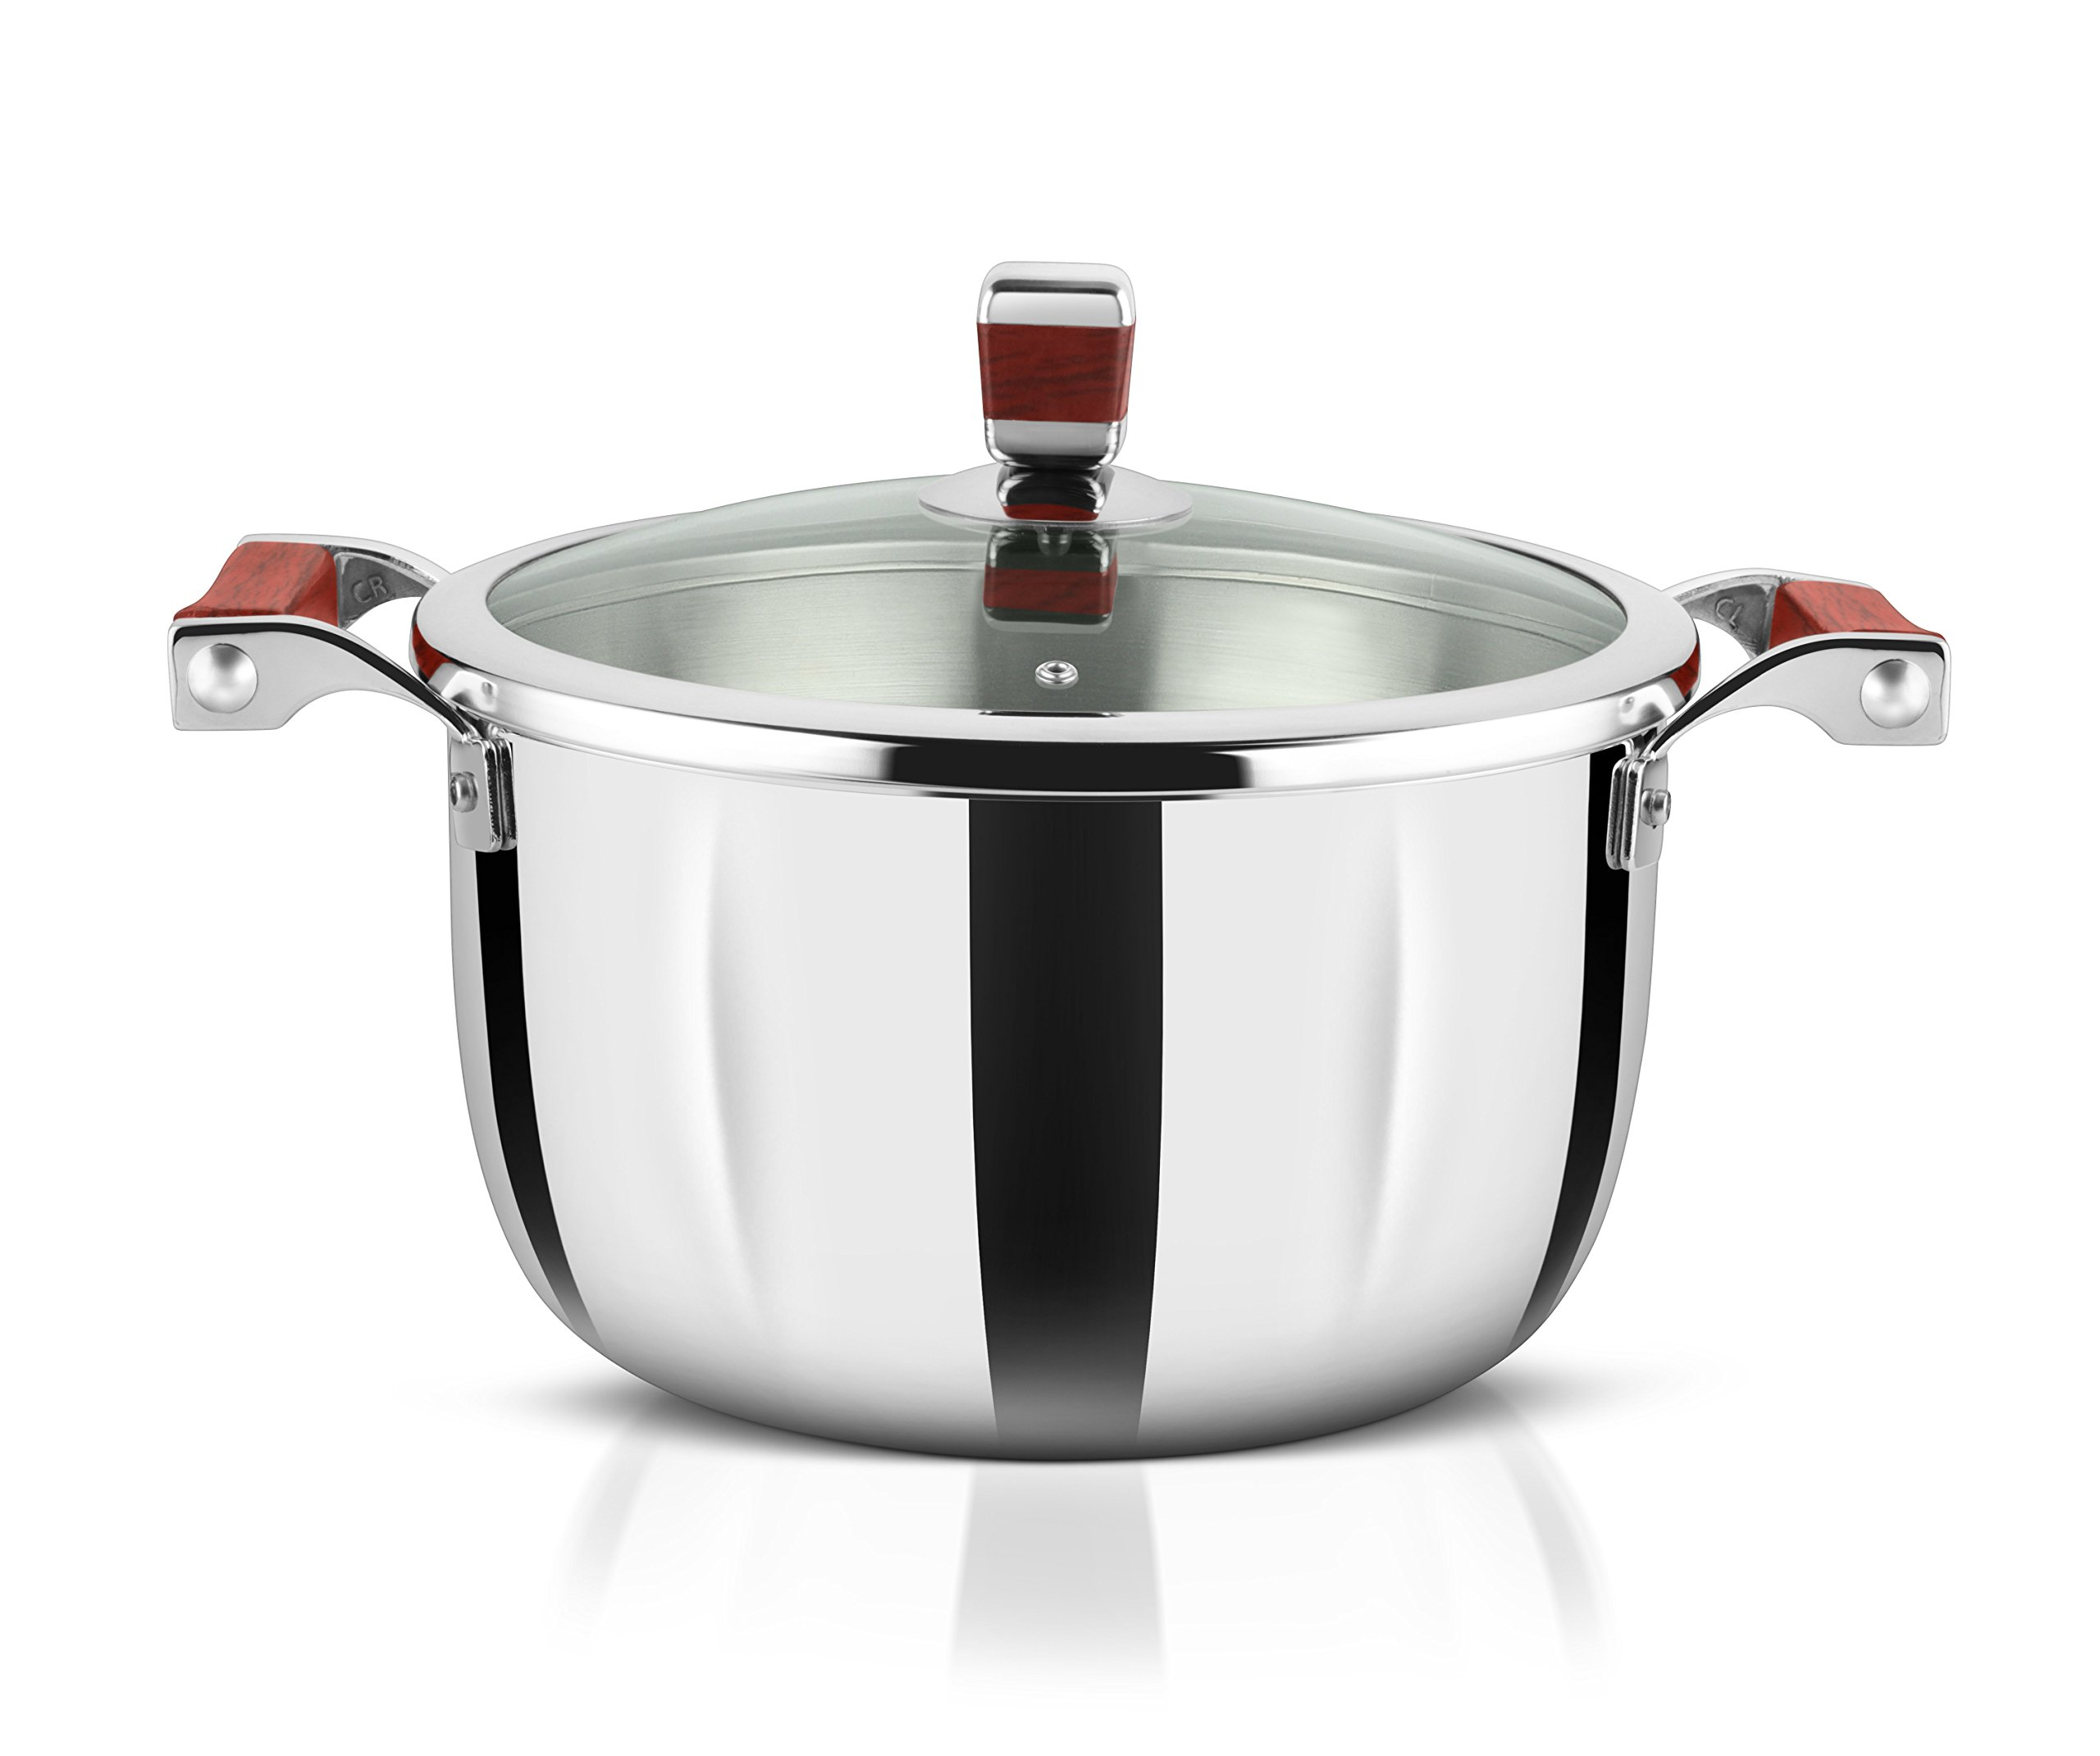 AVONWARE WholeBodyClad Stainless Steel 3.2 Liter Triply Casserole Cooking Pot with Glass Lid - 20cm